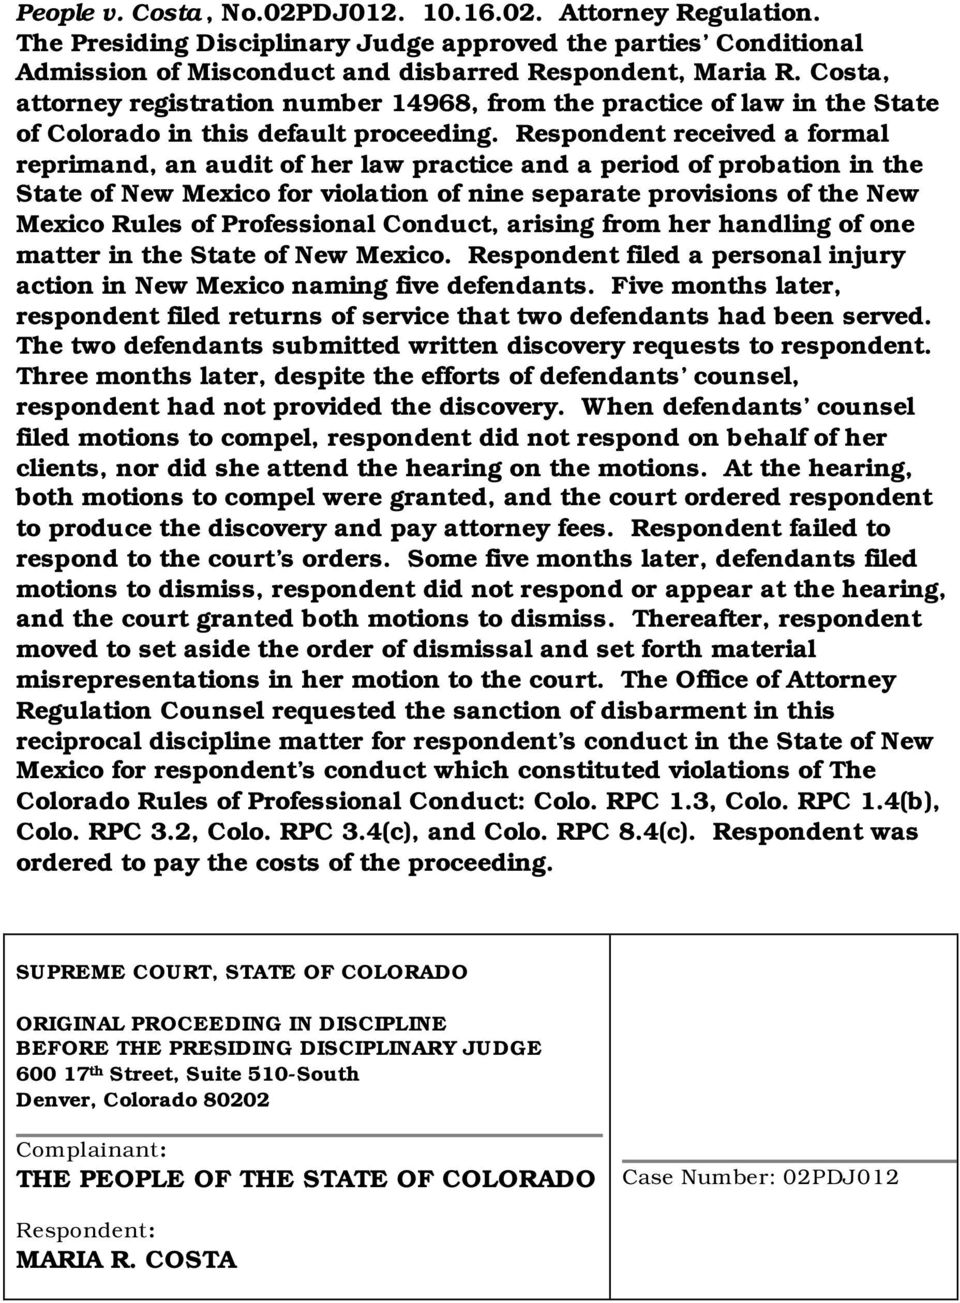 Respondent received a formal reprimand, an audit of her law practice and a period of probation in the State of New Mexico for violation of nine separate provisions of the New Mexico Rules of